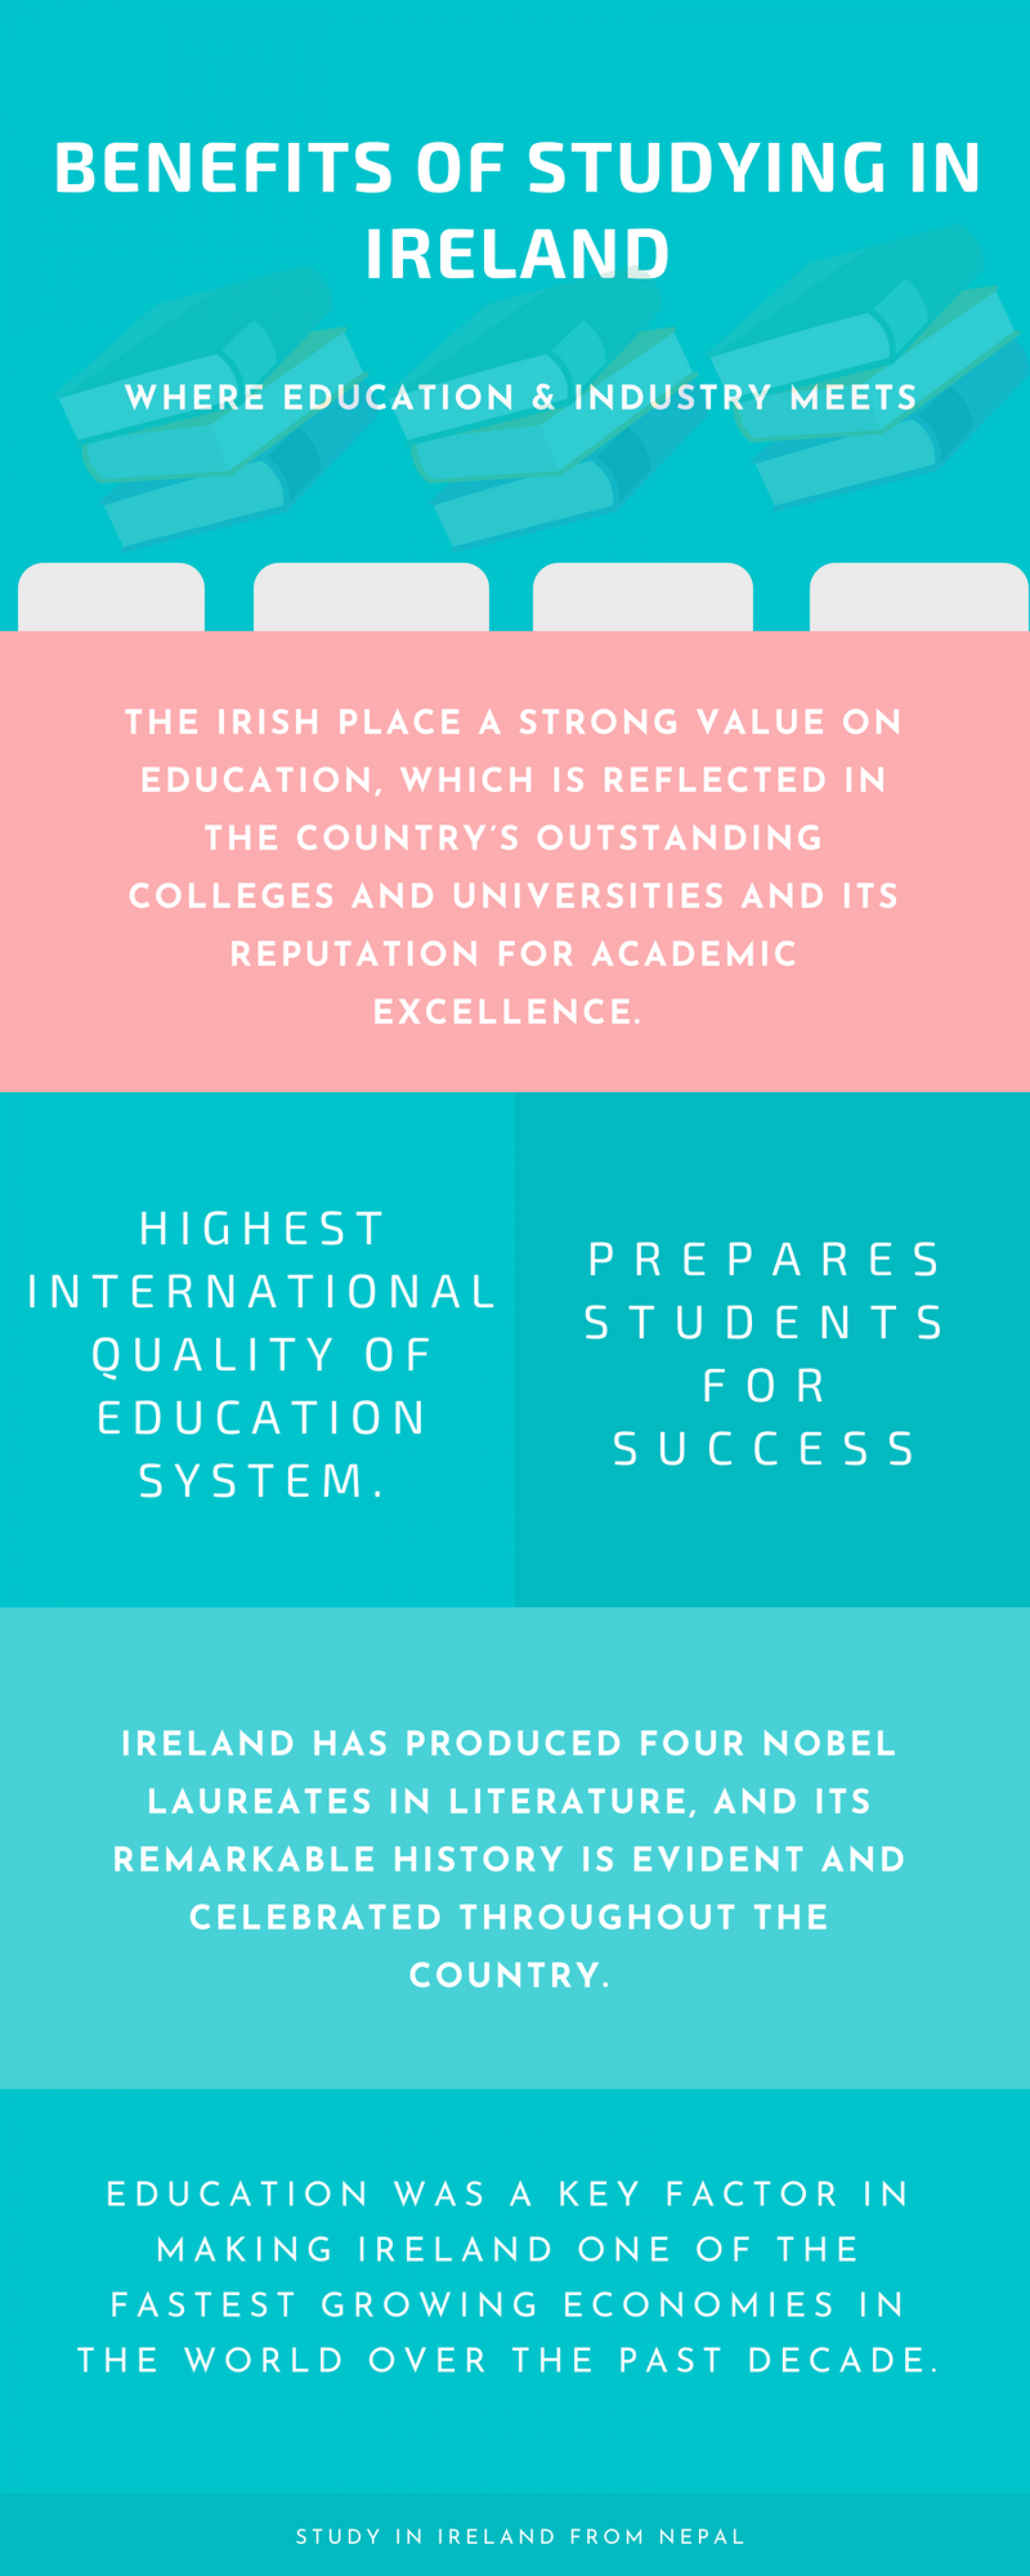 Benefits of Studying in Ireland Infographic